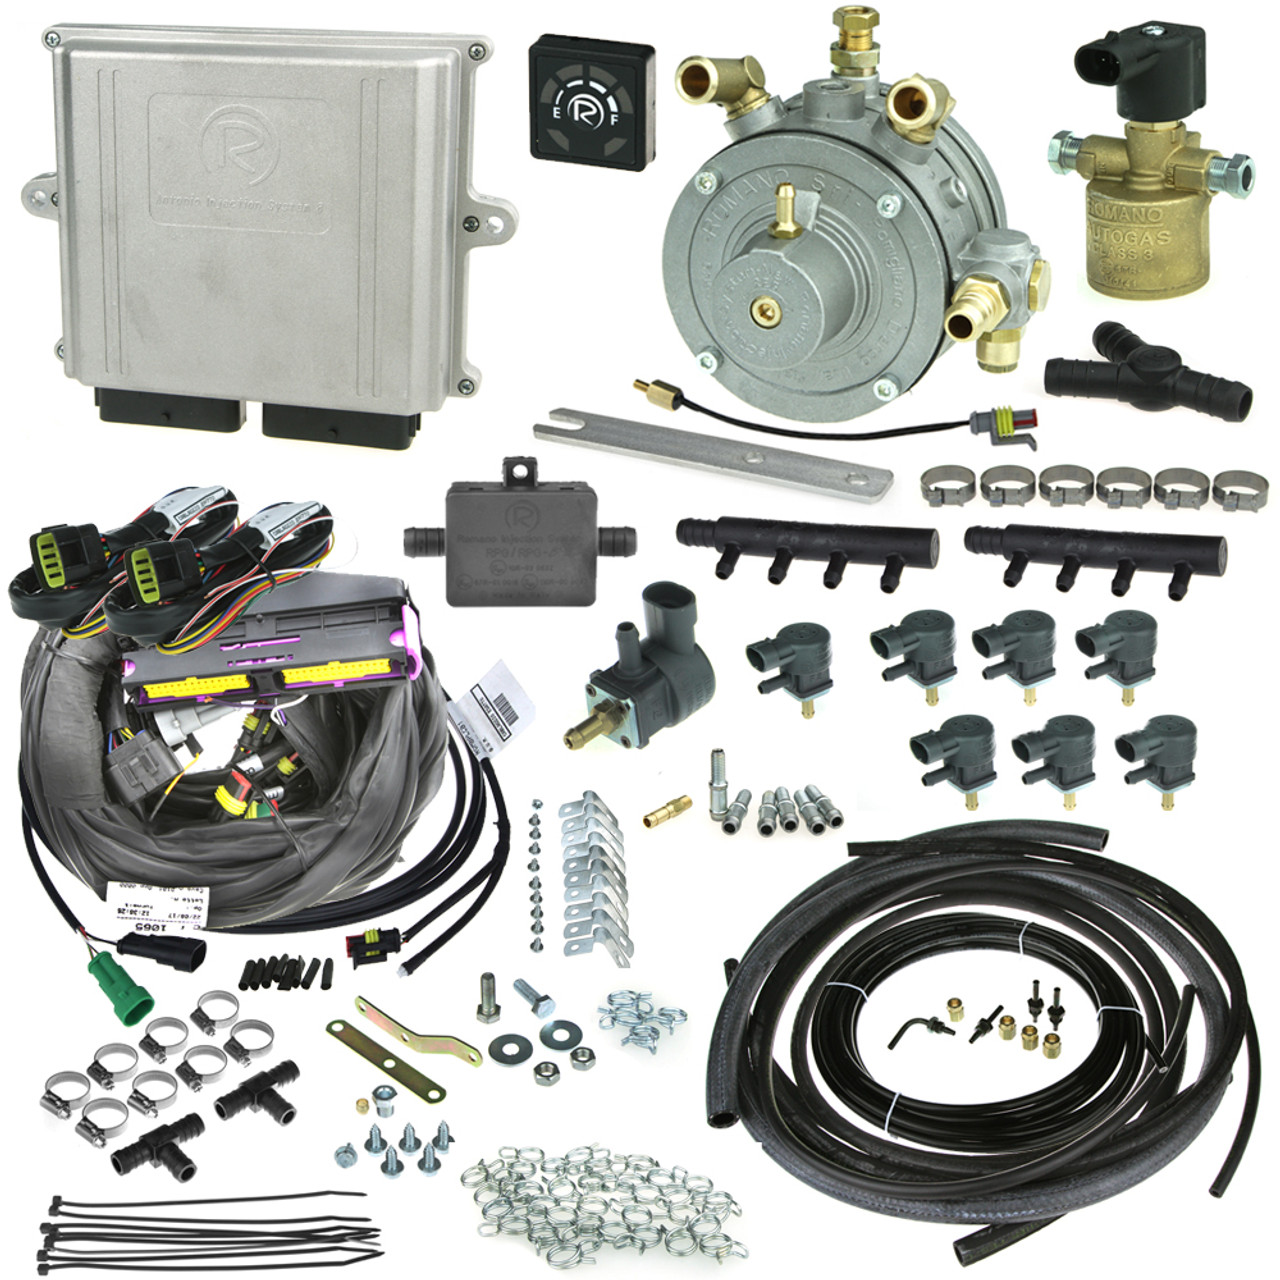 Romano Antonio 8 Cylinders Injection System Autogas Lpg Conversion Kit With Reducer Injectors And All Accessories